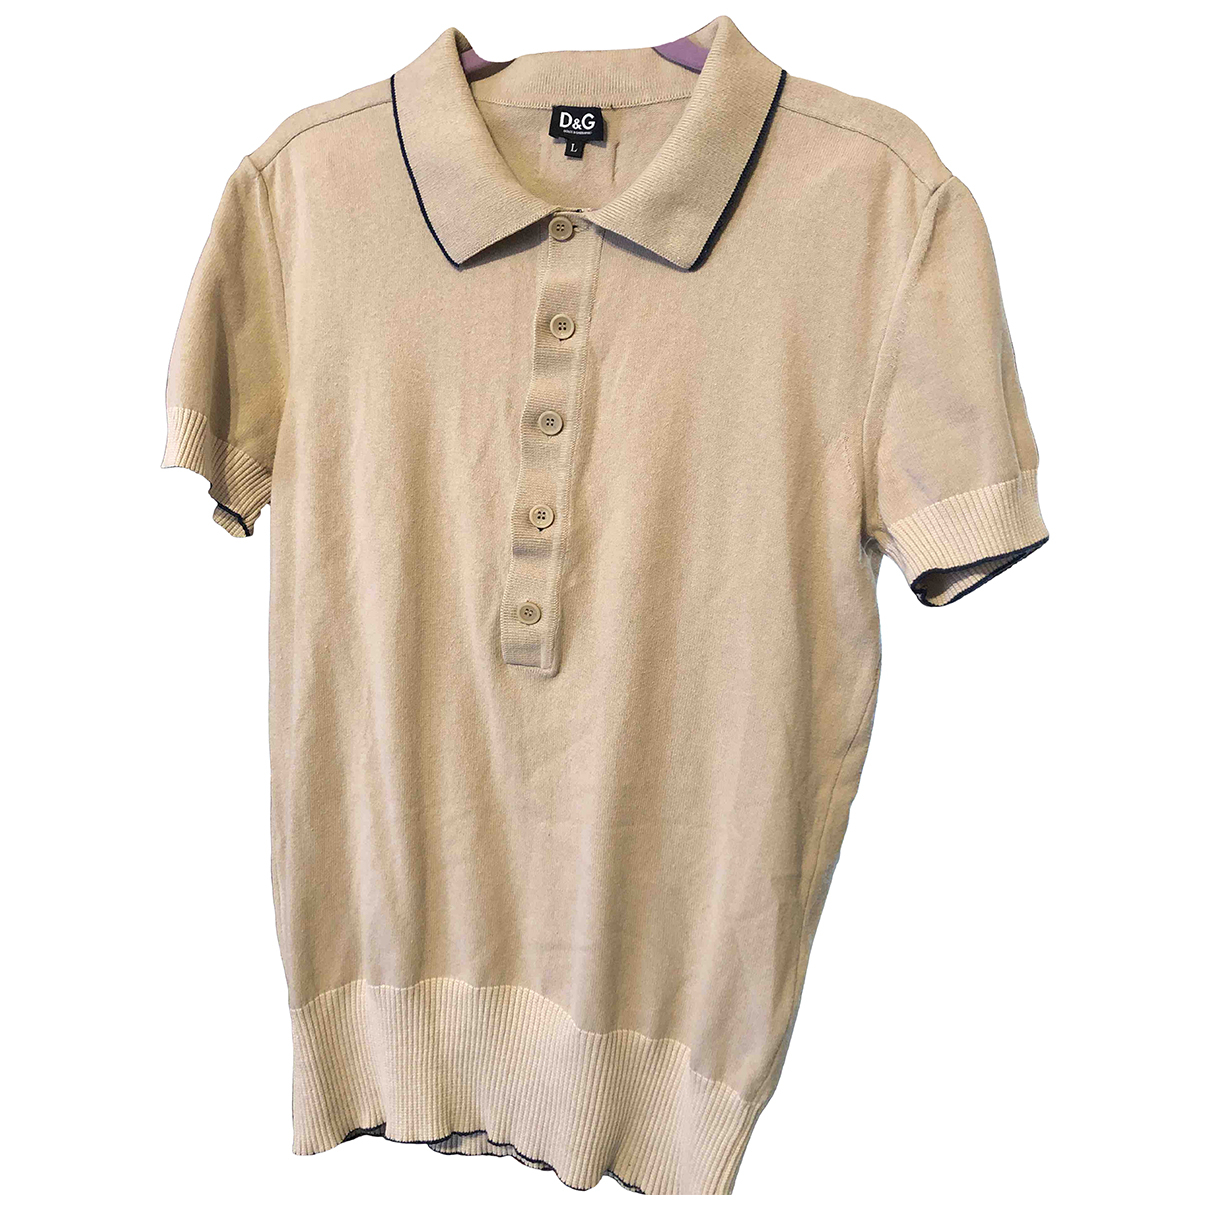 D&g \N Camel Cotton Polo shirts for Men L International